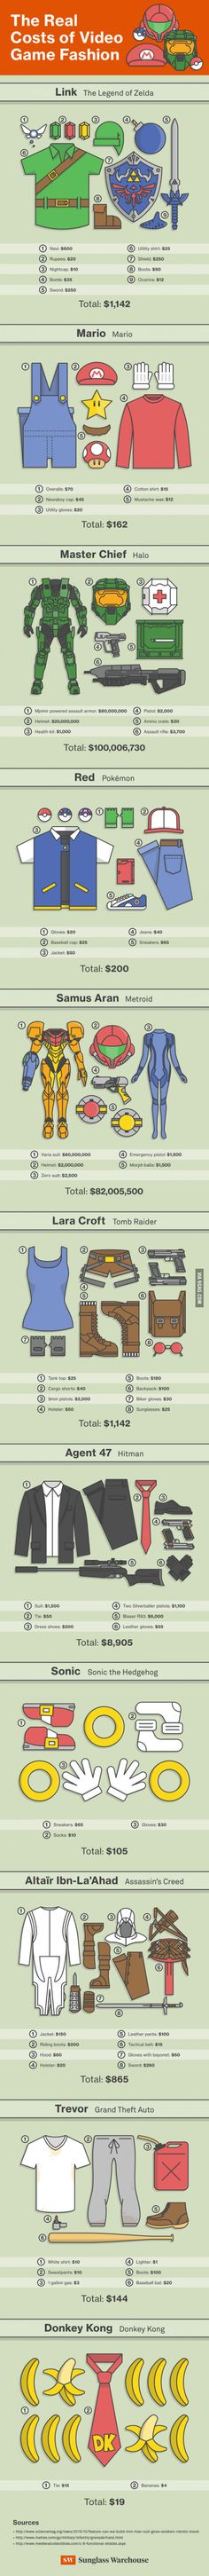 Gamer Images Video game Photos from http://www.edibleinkphotopaper.com The real cost of video game fashion